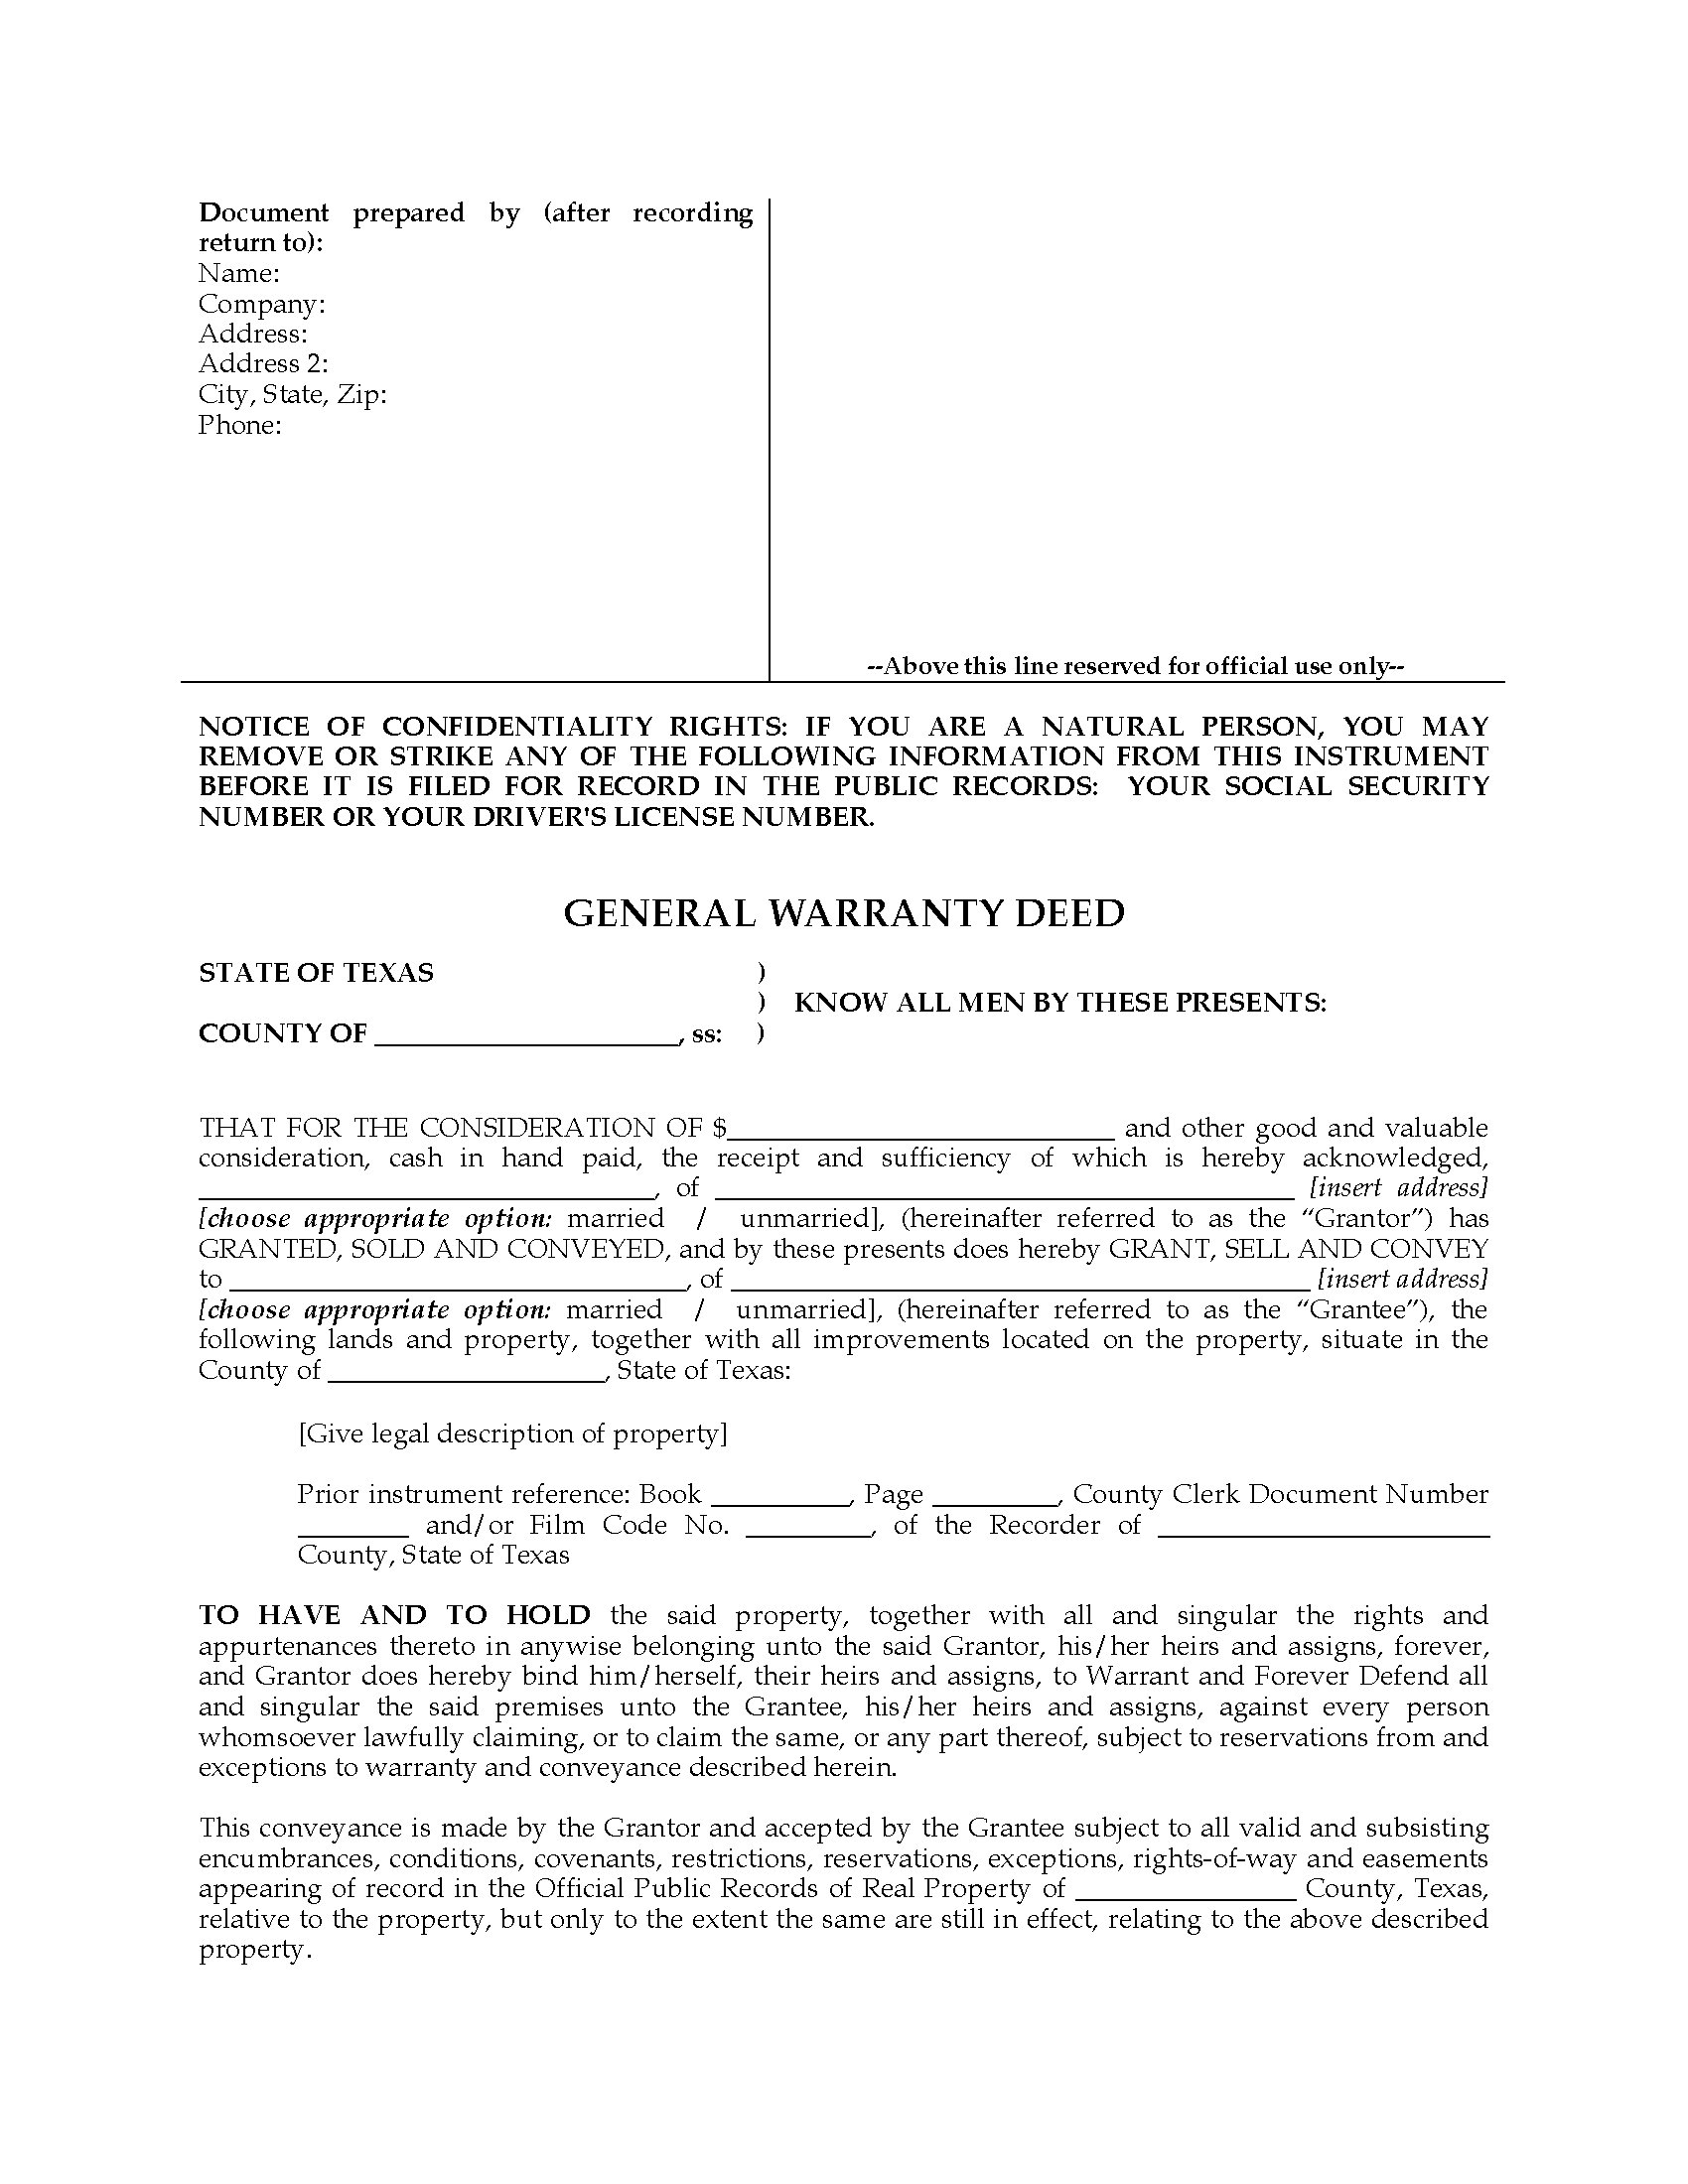 Texas General Warranty Deed Form | Legal Forms and Business ...